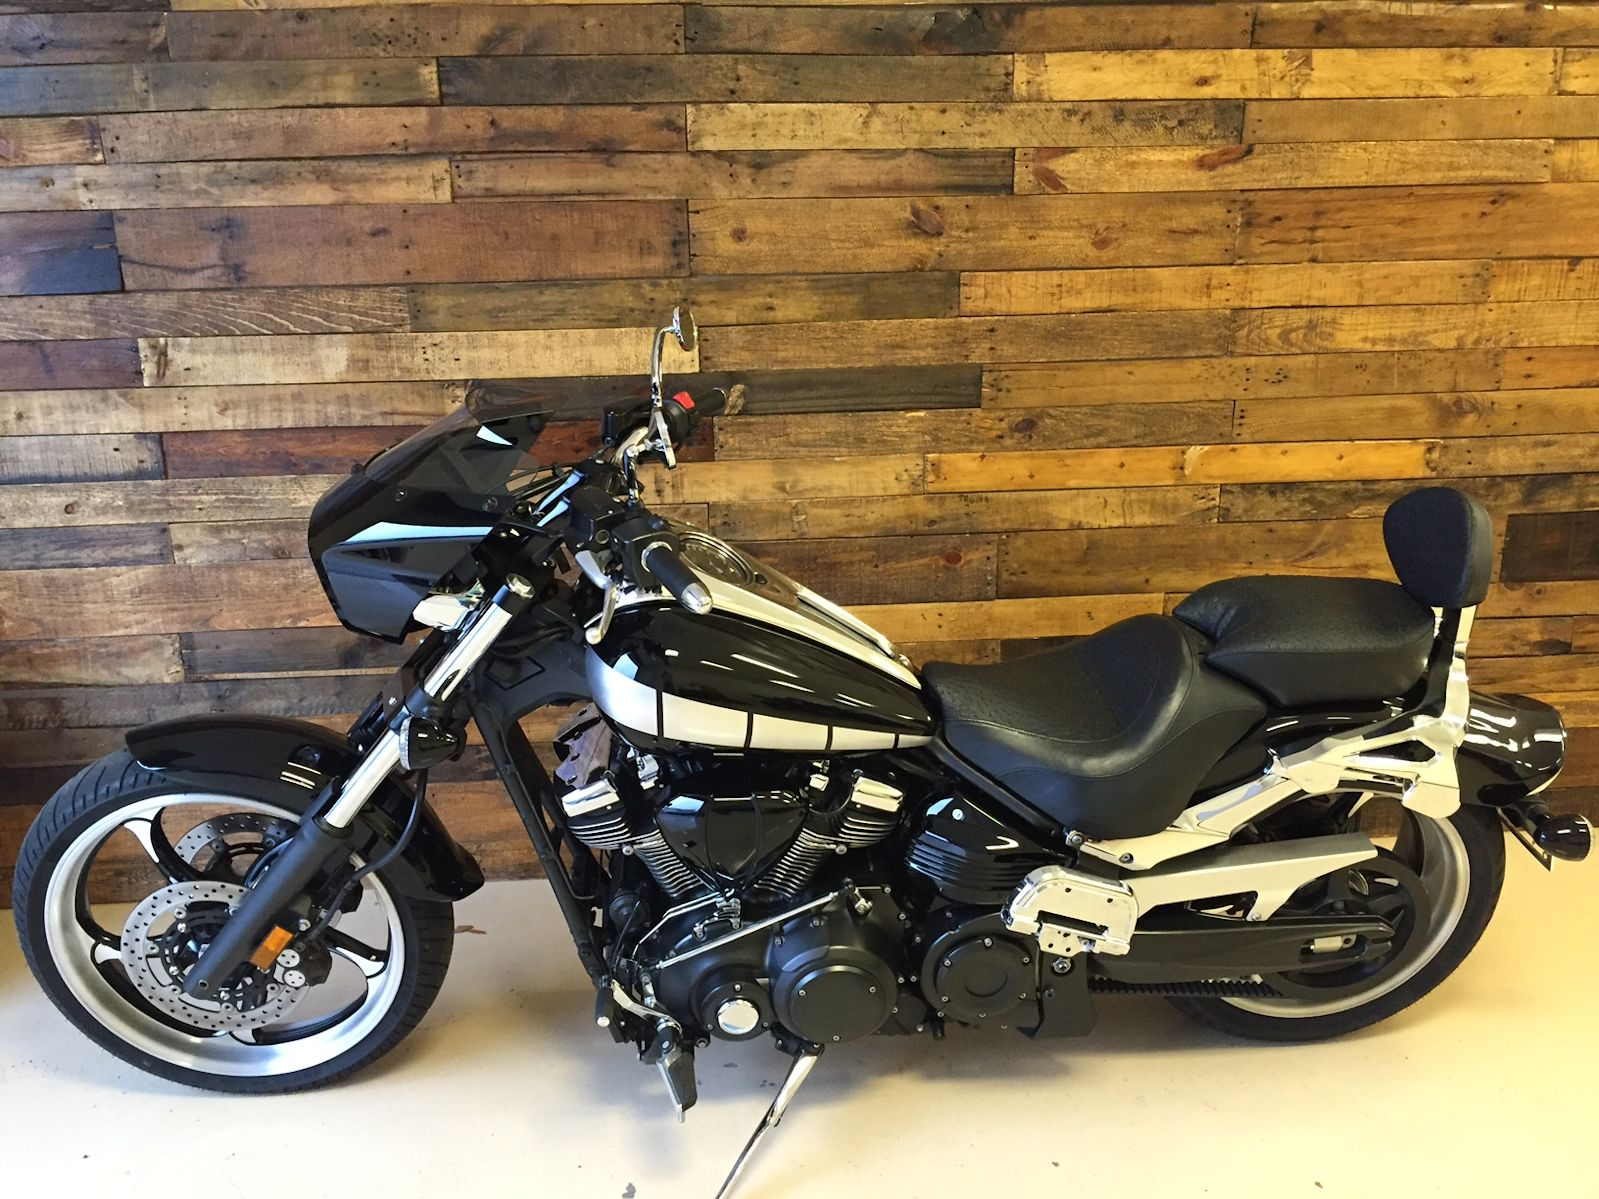 Cruiser Motorcycle Black and White